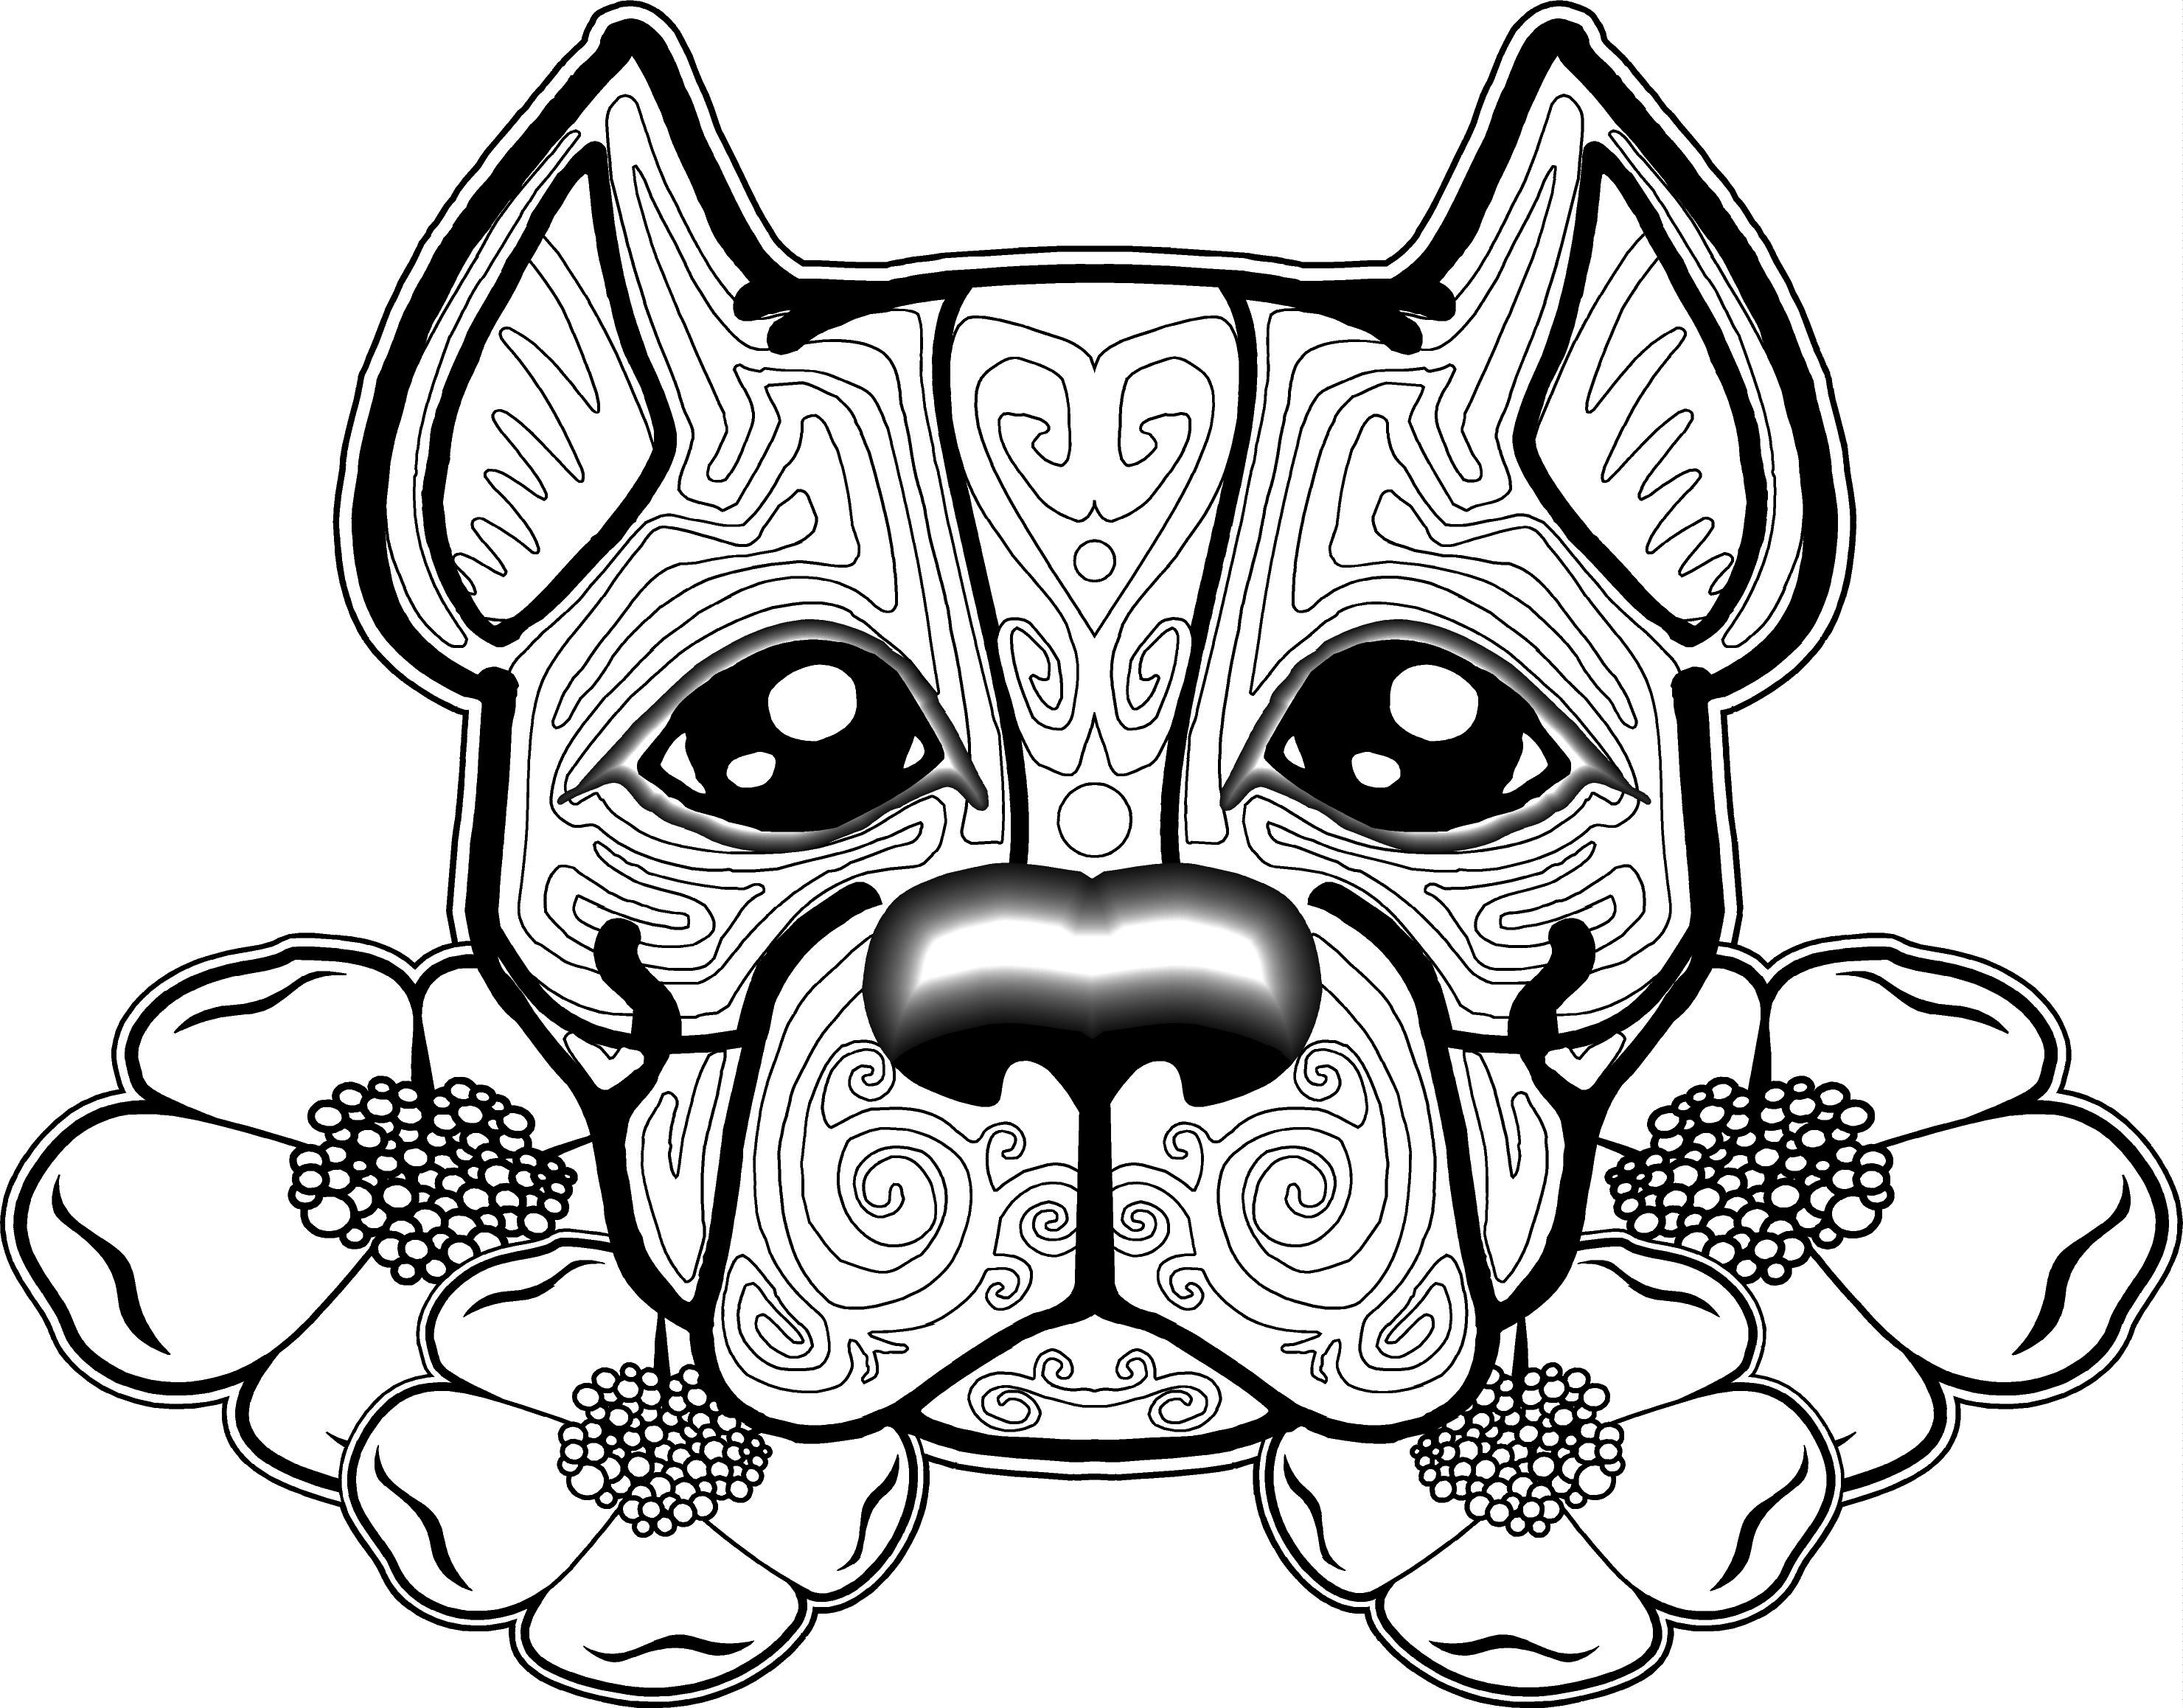 Puppy for Christmas - Pet Dog Coloring page | Puppy coloring pages ... | 2317x2961